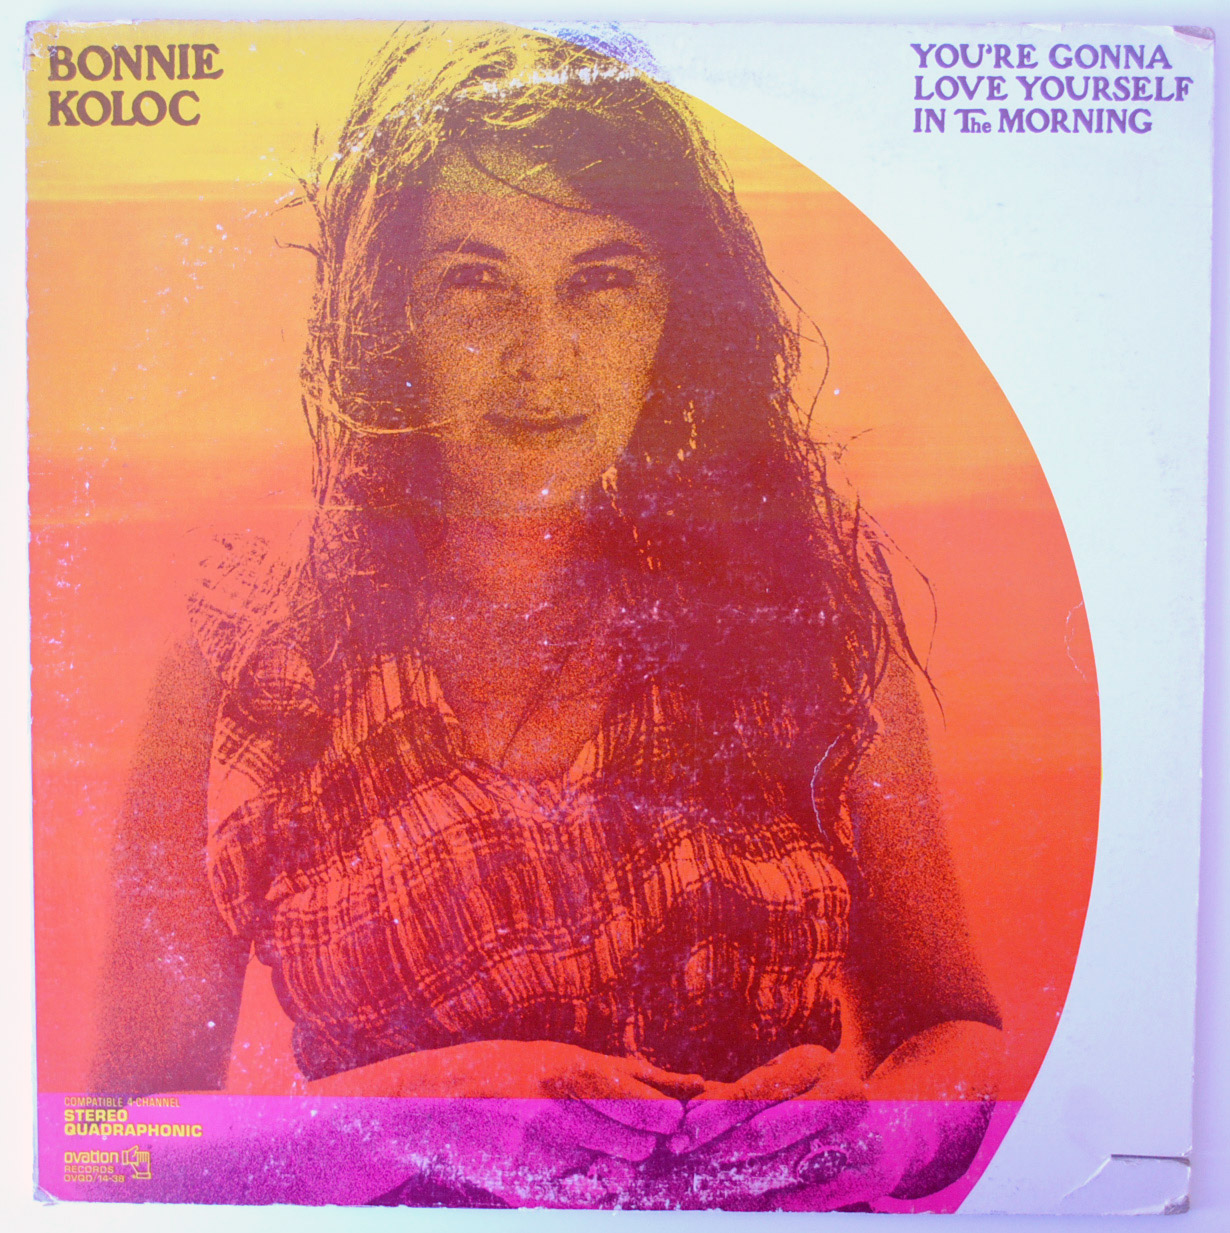 Bonnie Koloc you're gonna love yourself in the morning